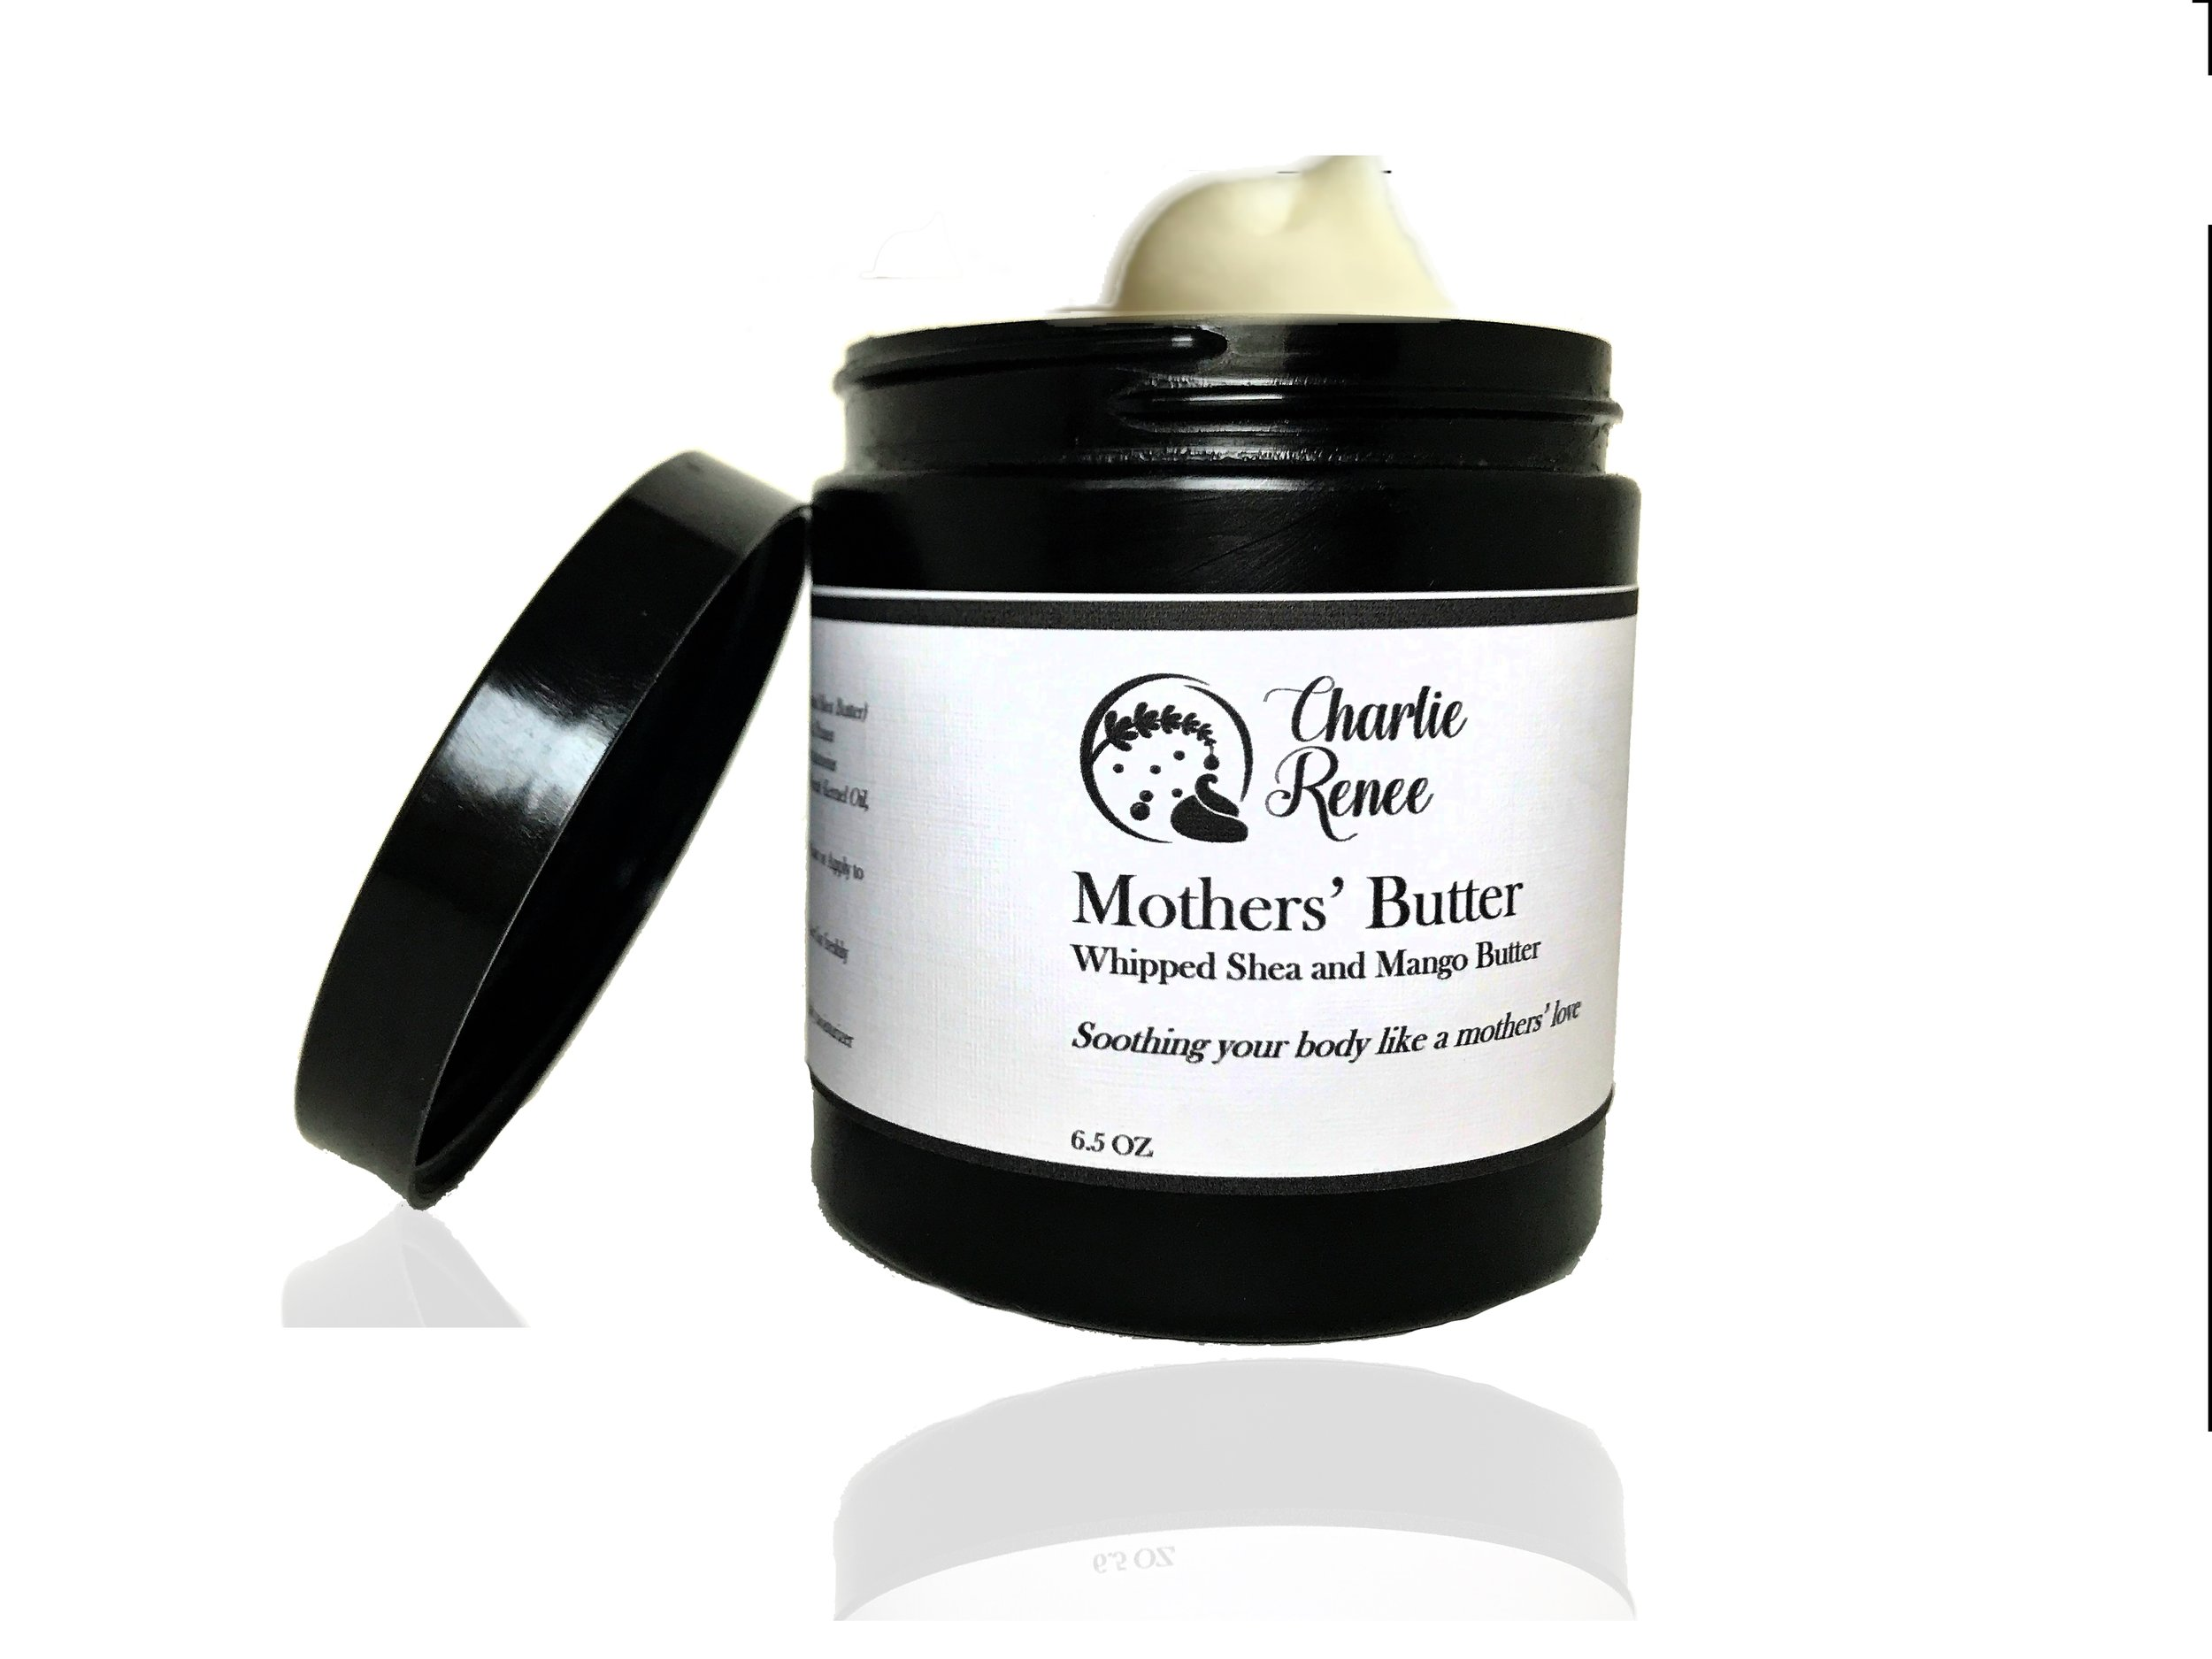 **COMING SOON**MOTHERS' BUTTER - This whipped shea and mango butter will protect, seal and nourish strands and body. You will enjoy the creamy and spreadable butter as it seals the moisture into your hair and body. Mothers' Butter is made using natural ingredients and fragrances.